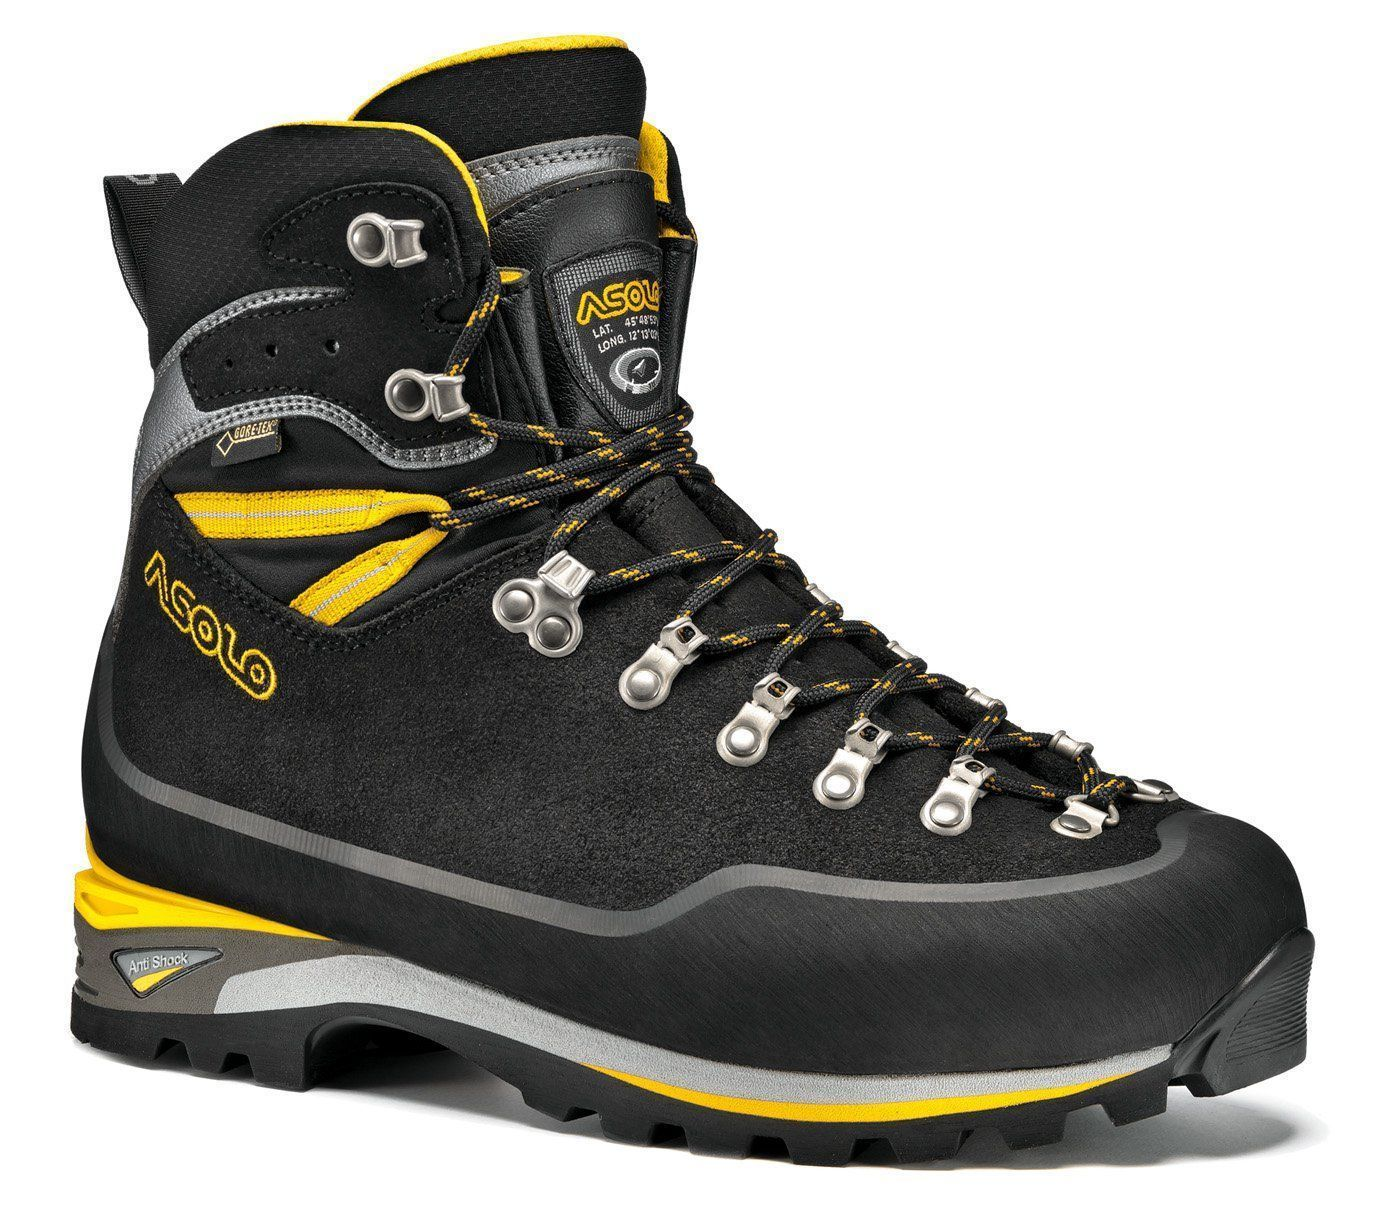 f69e89d835ba Nice 49 Fascinating Top Hiking And Camping Gear Collections You Must Have.  More at https